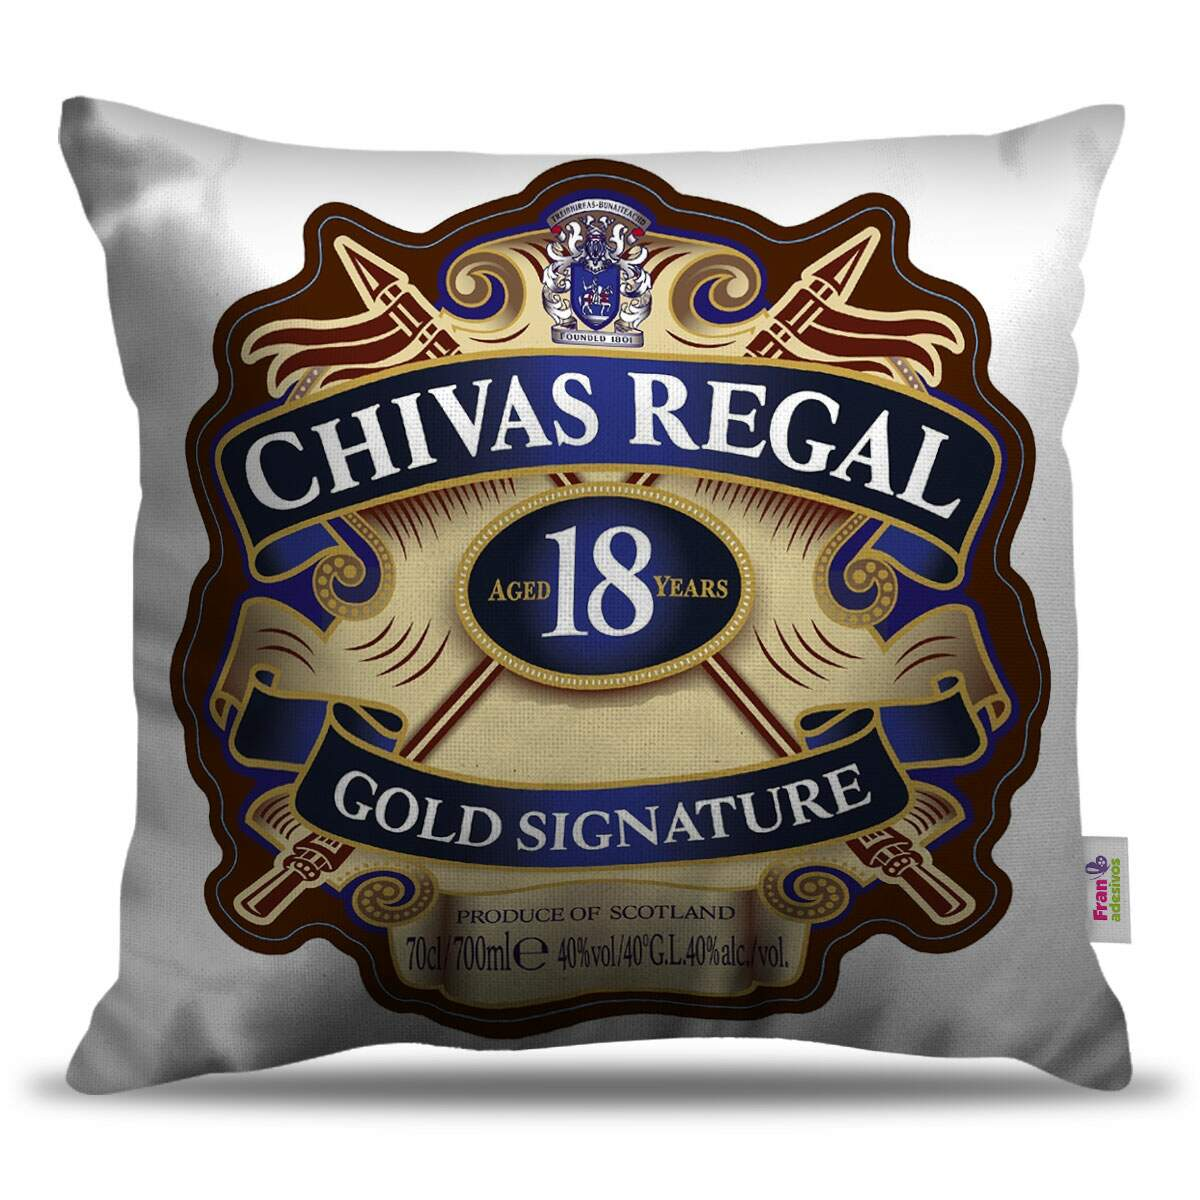 Almofada Decorativa Chivas Regal Gold Signature